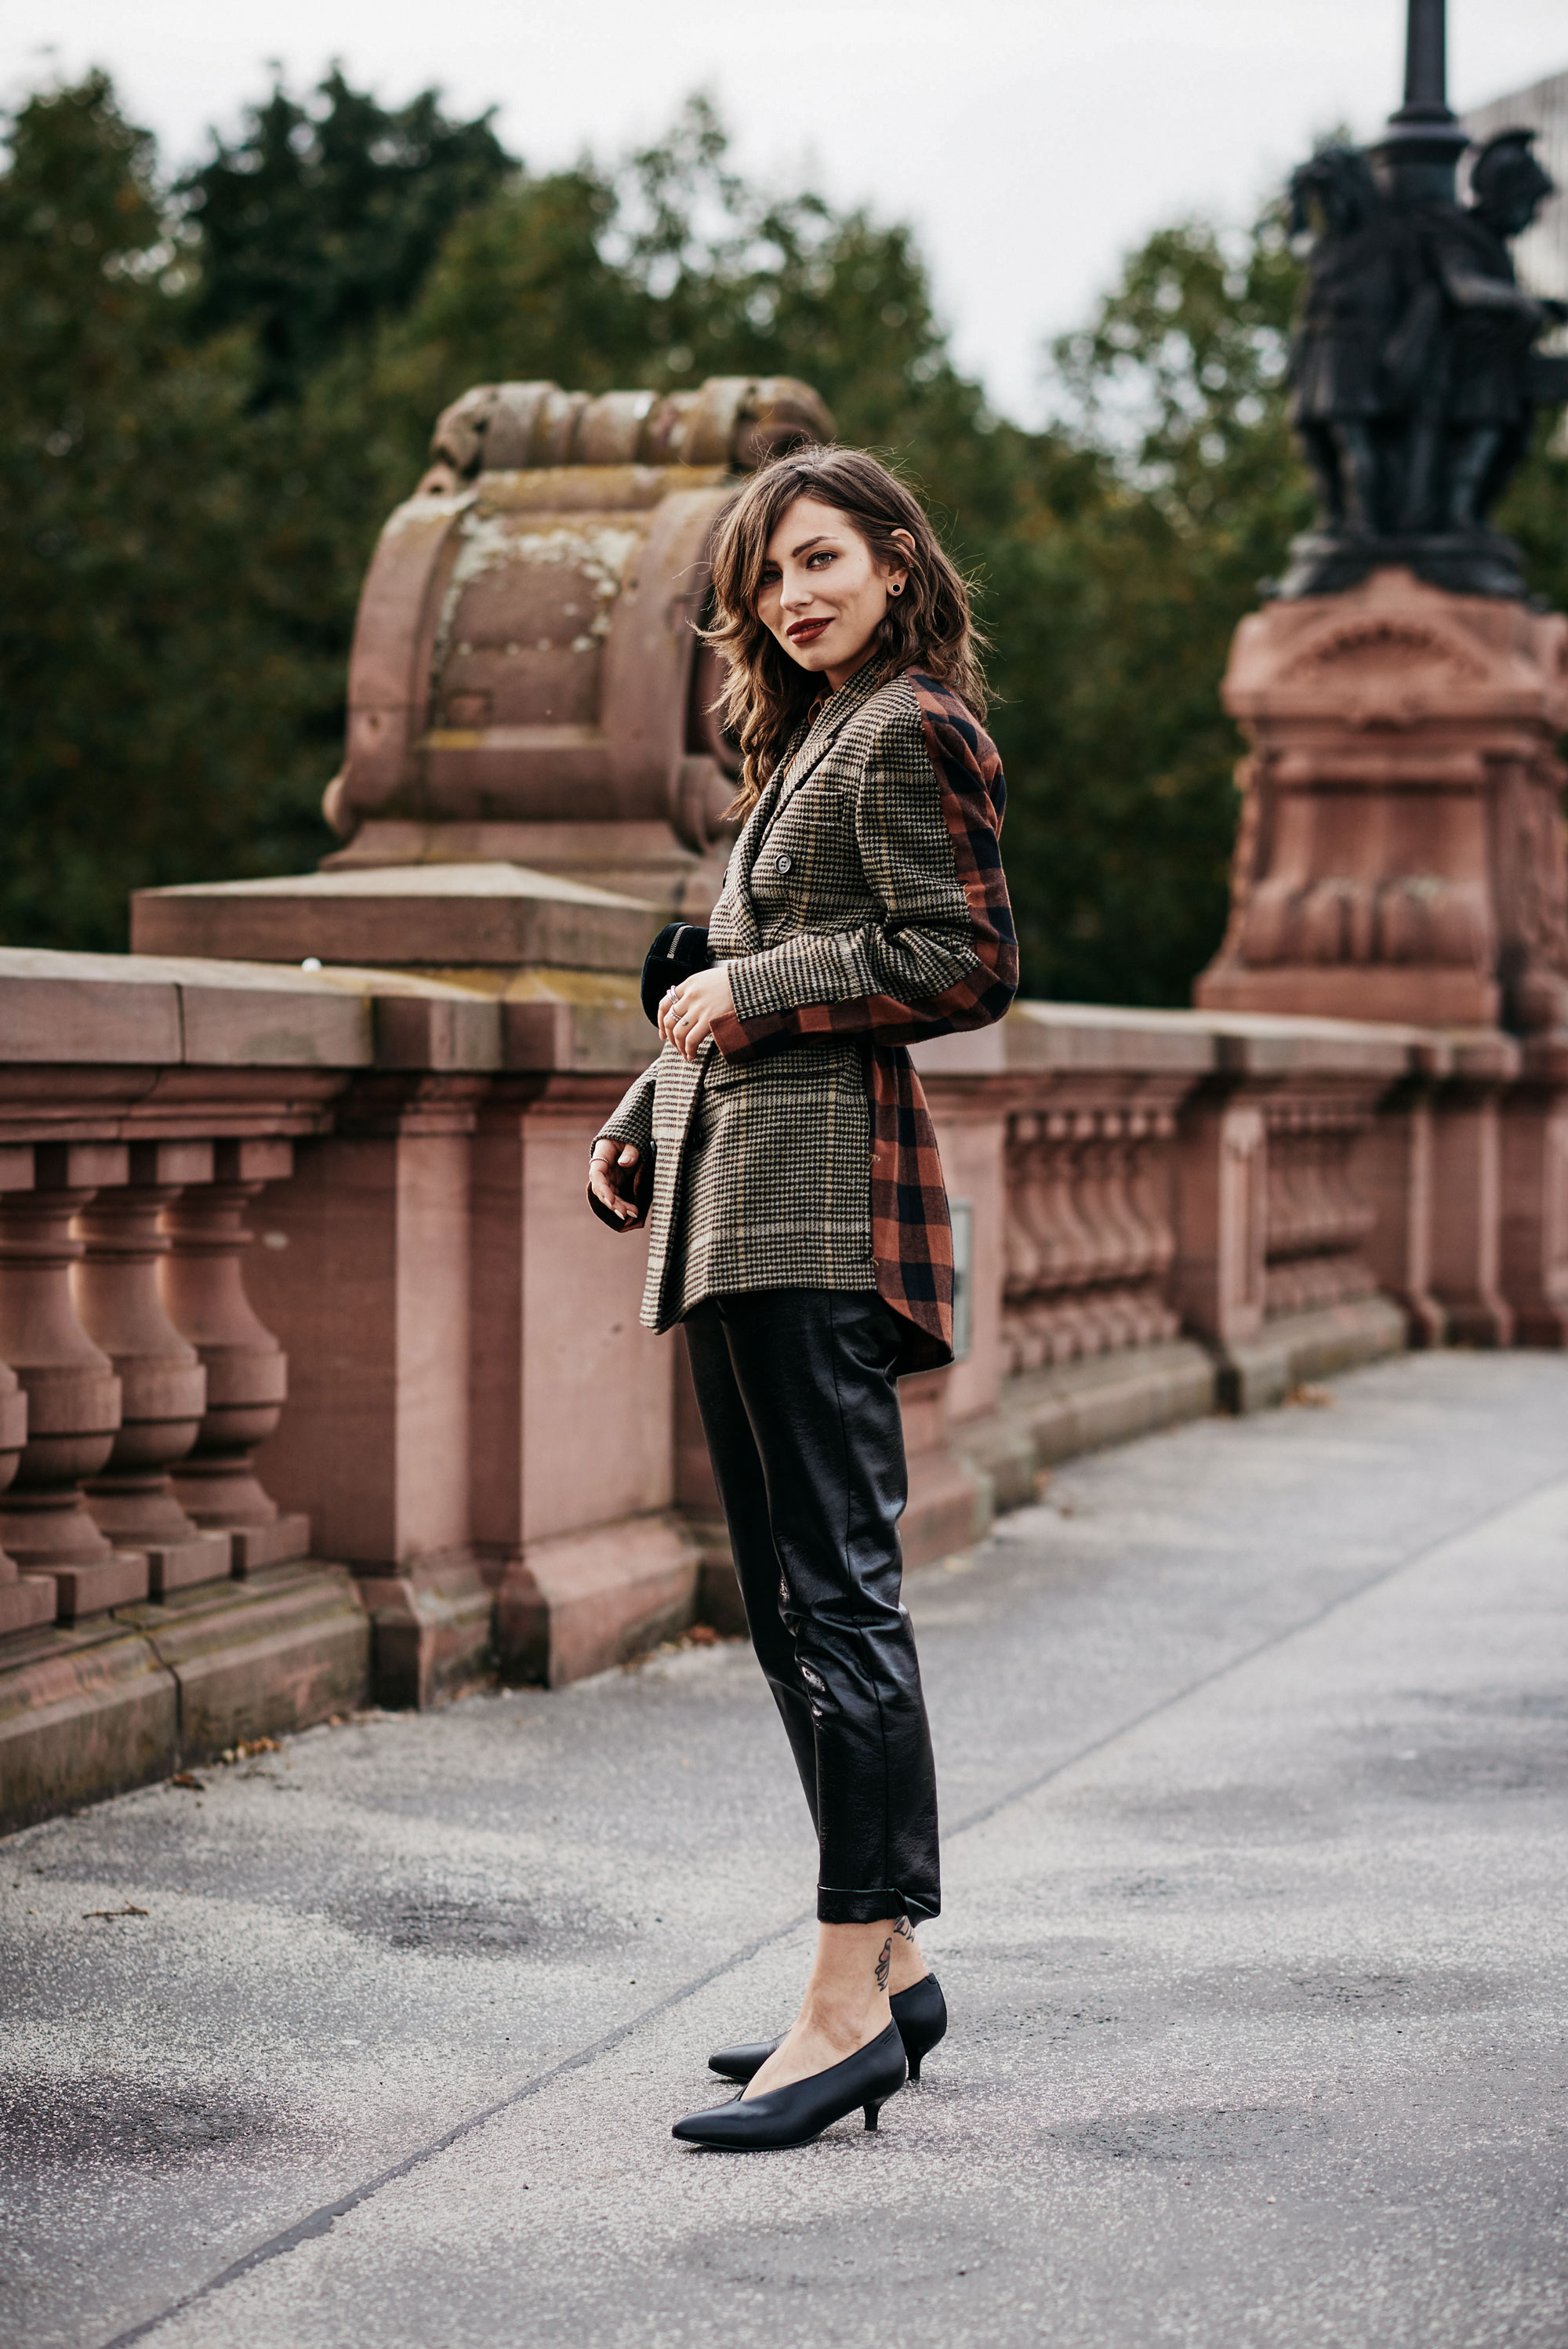 Fashion Blogger Masha Sedgwick from Berlin | style: parisien, french, elegant, edgy, cool effortless, autumn | AW17 | Blazer with two different pattern & Gucci belt bag | fanny pack